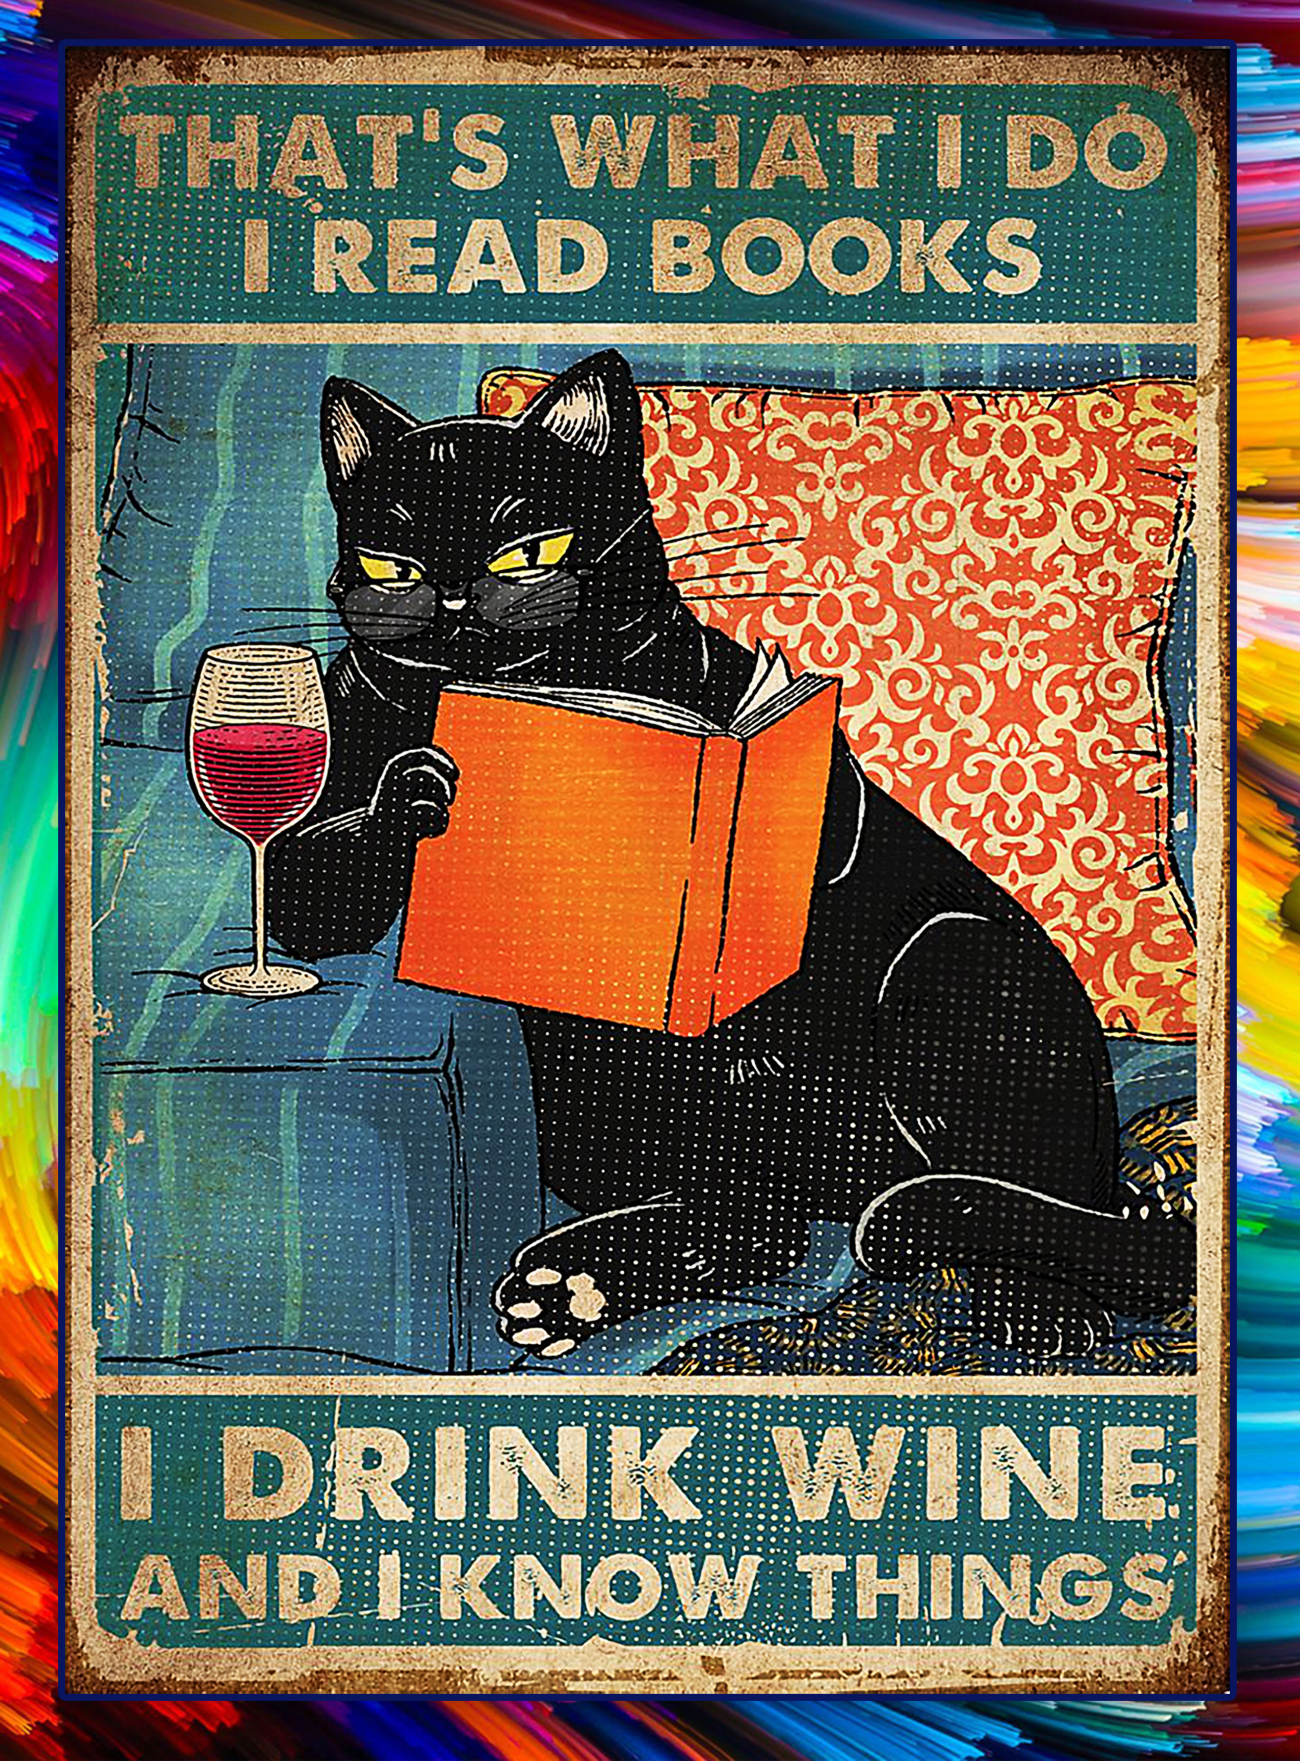 Cat that's what I do I read books I drink wine and I know things poster - A1